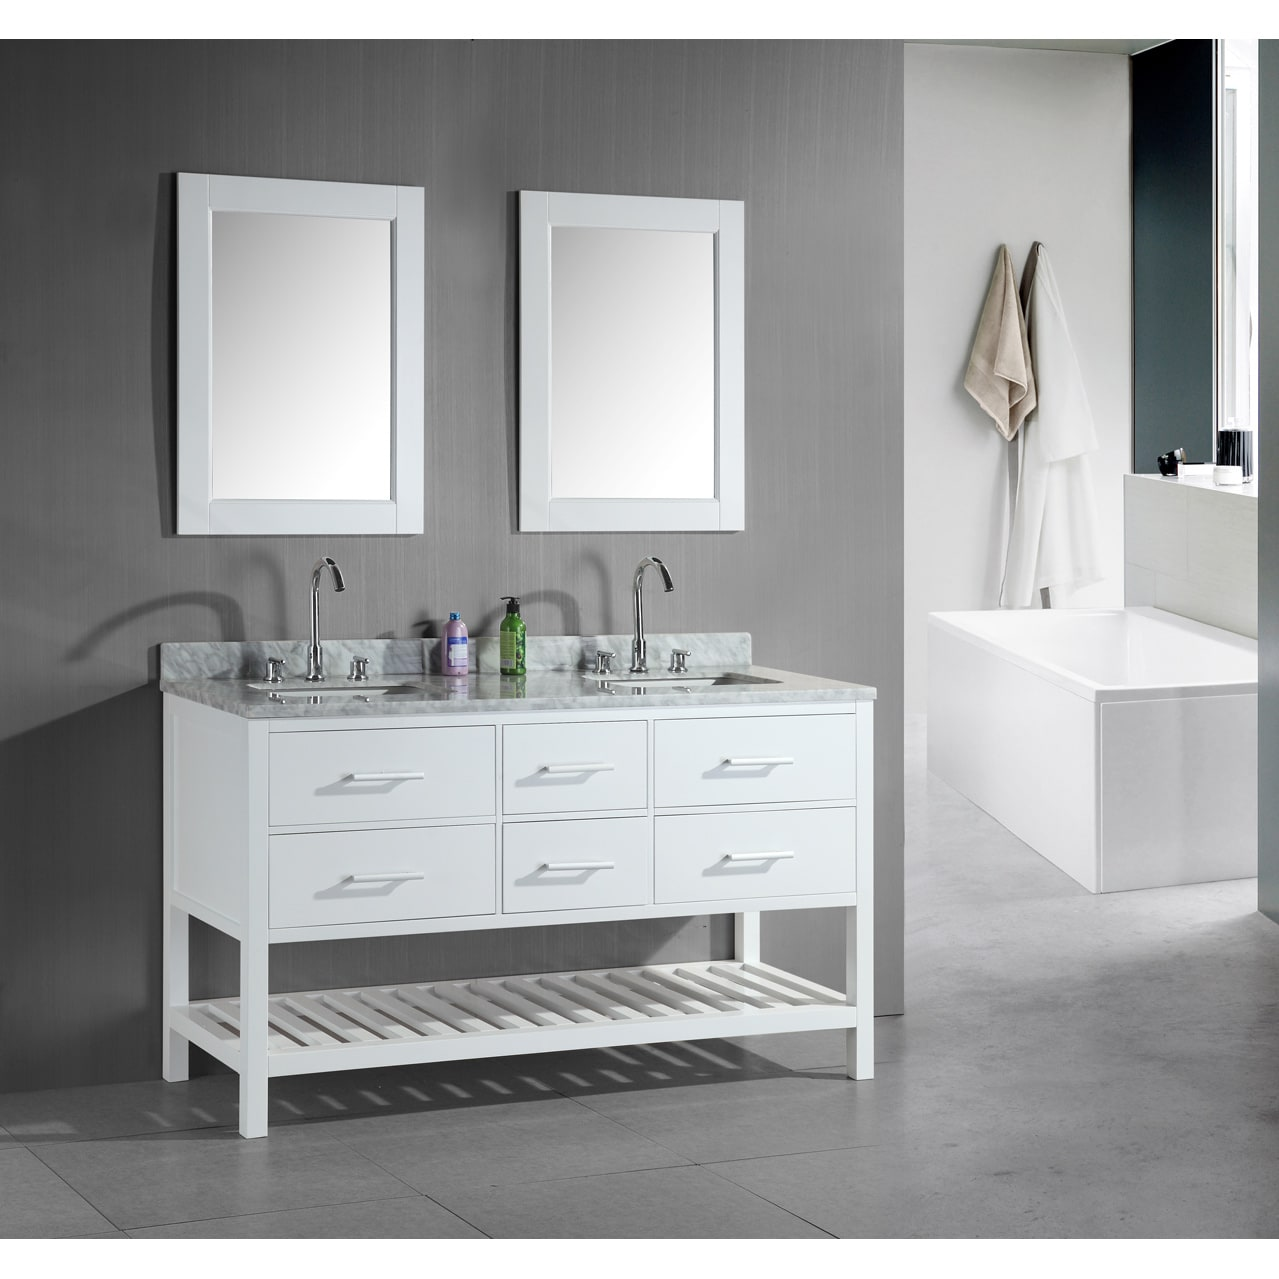 Design Element London 60-Inch Double Sink Bathroom White Vanity Set at Sears.com